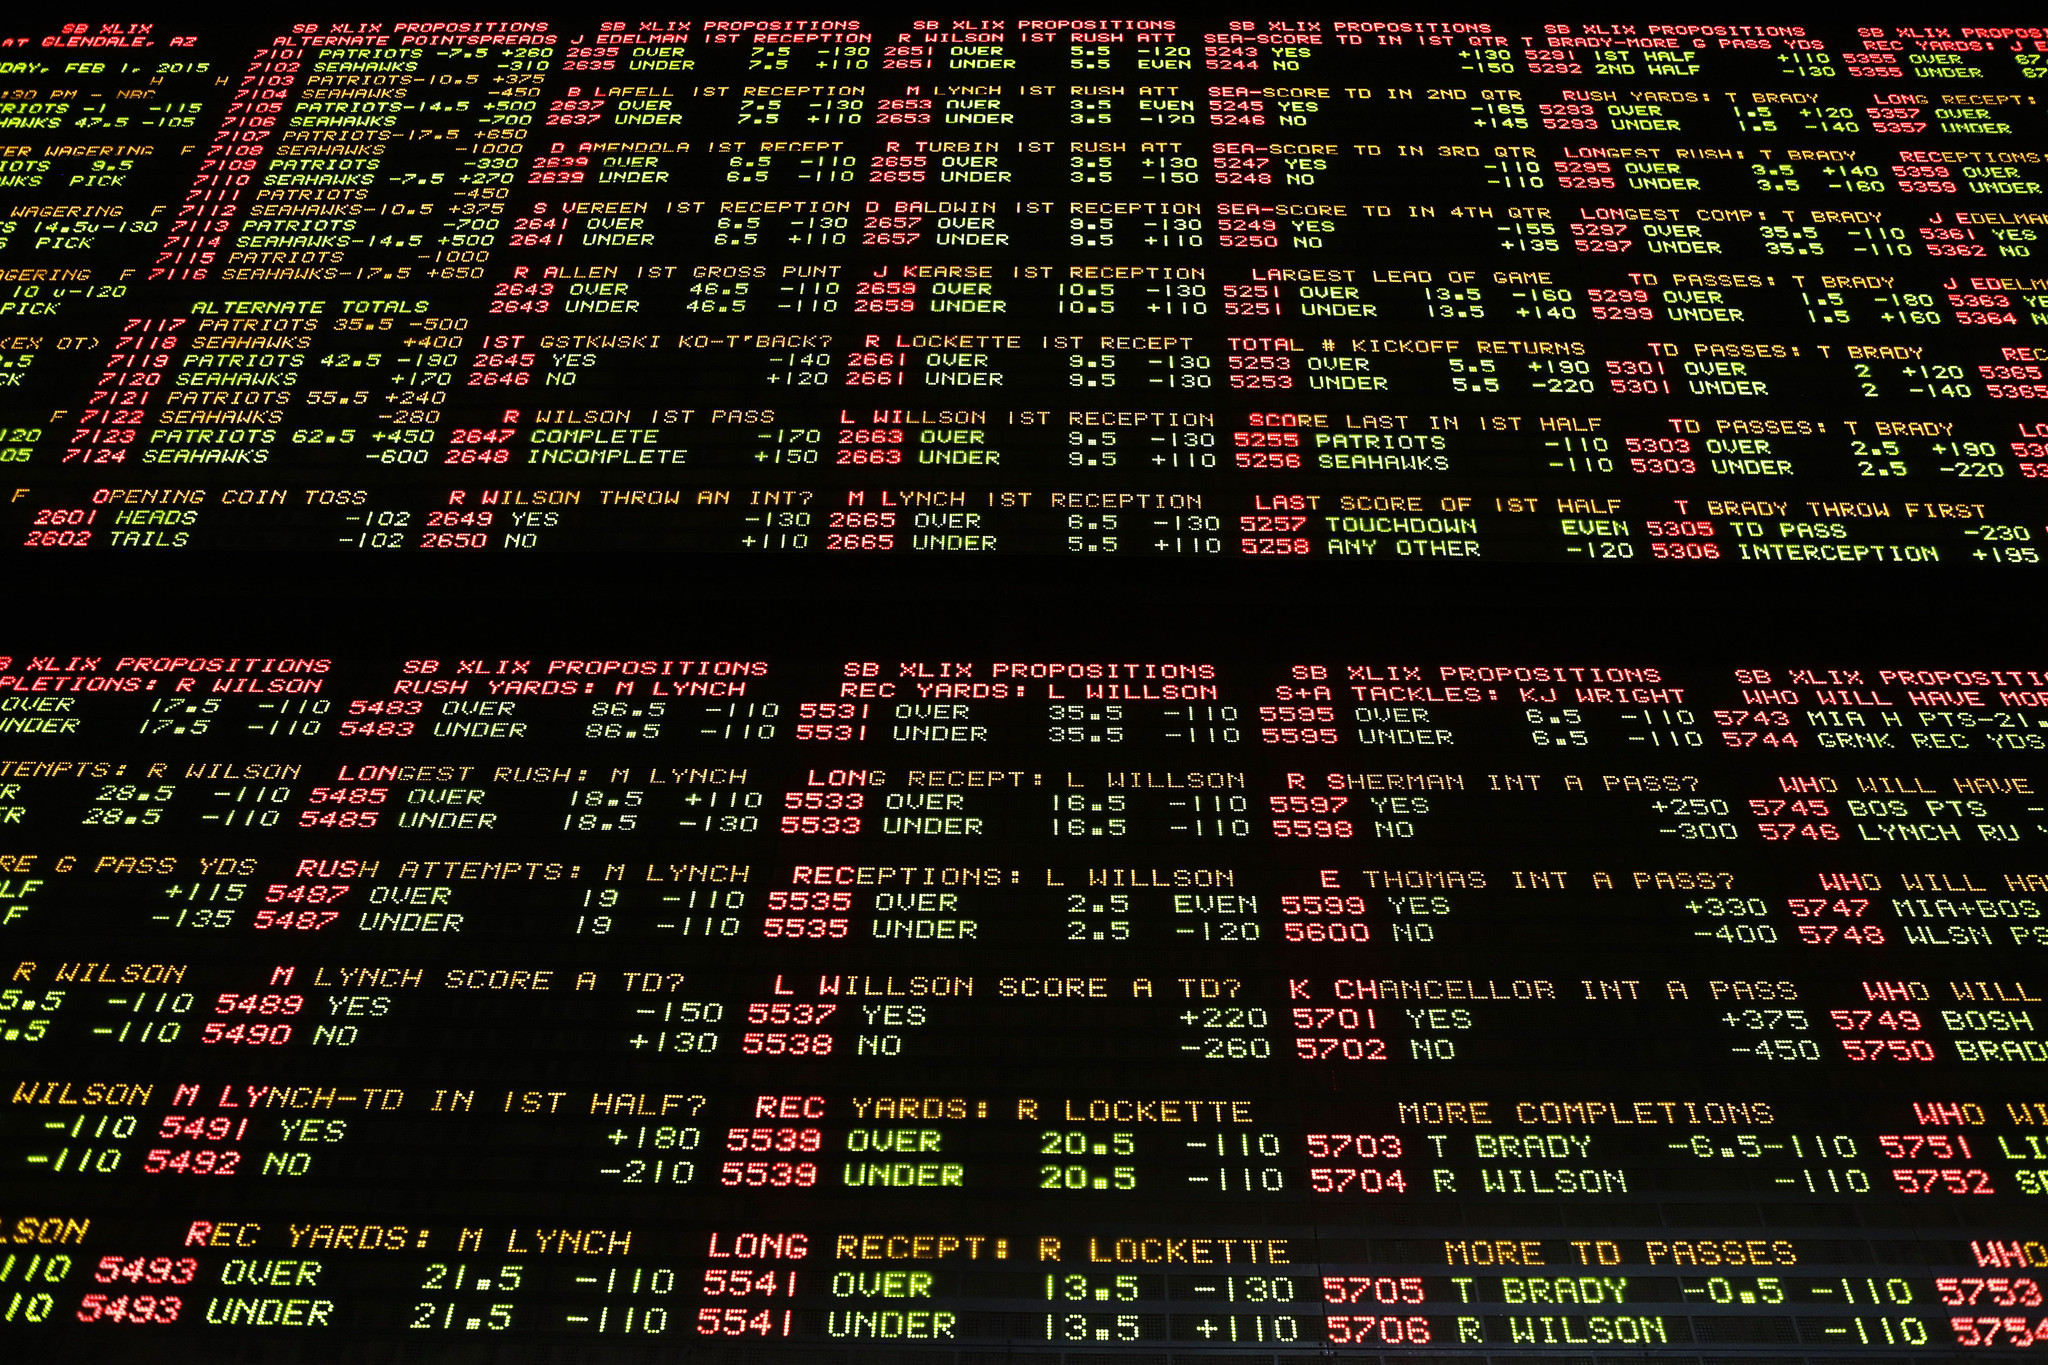 Super Bowl Sports Betting Odds